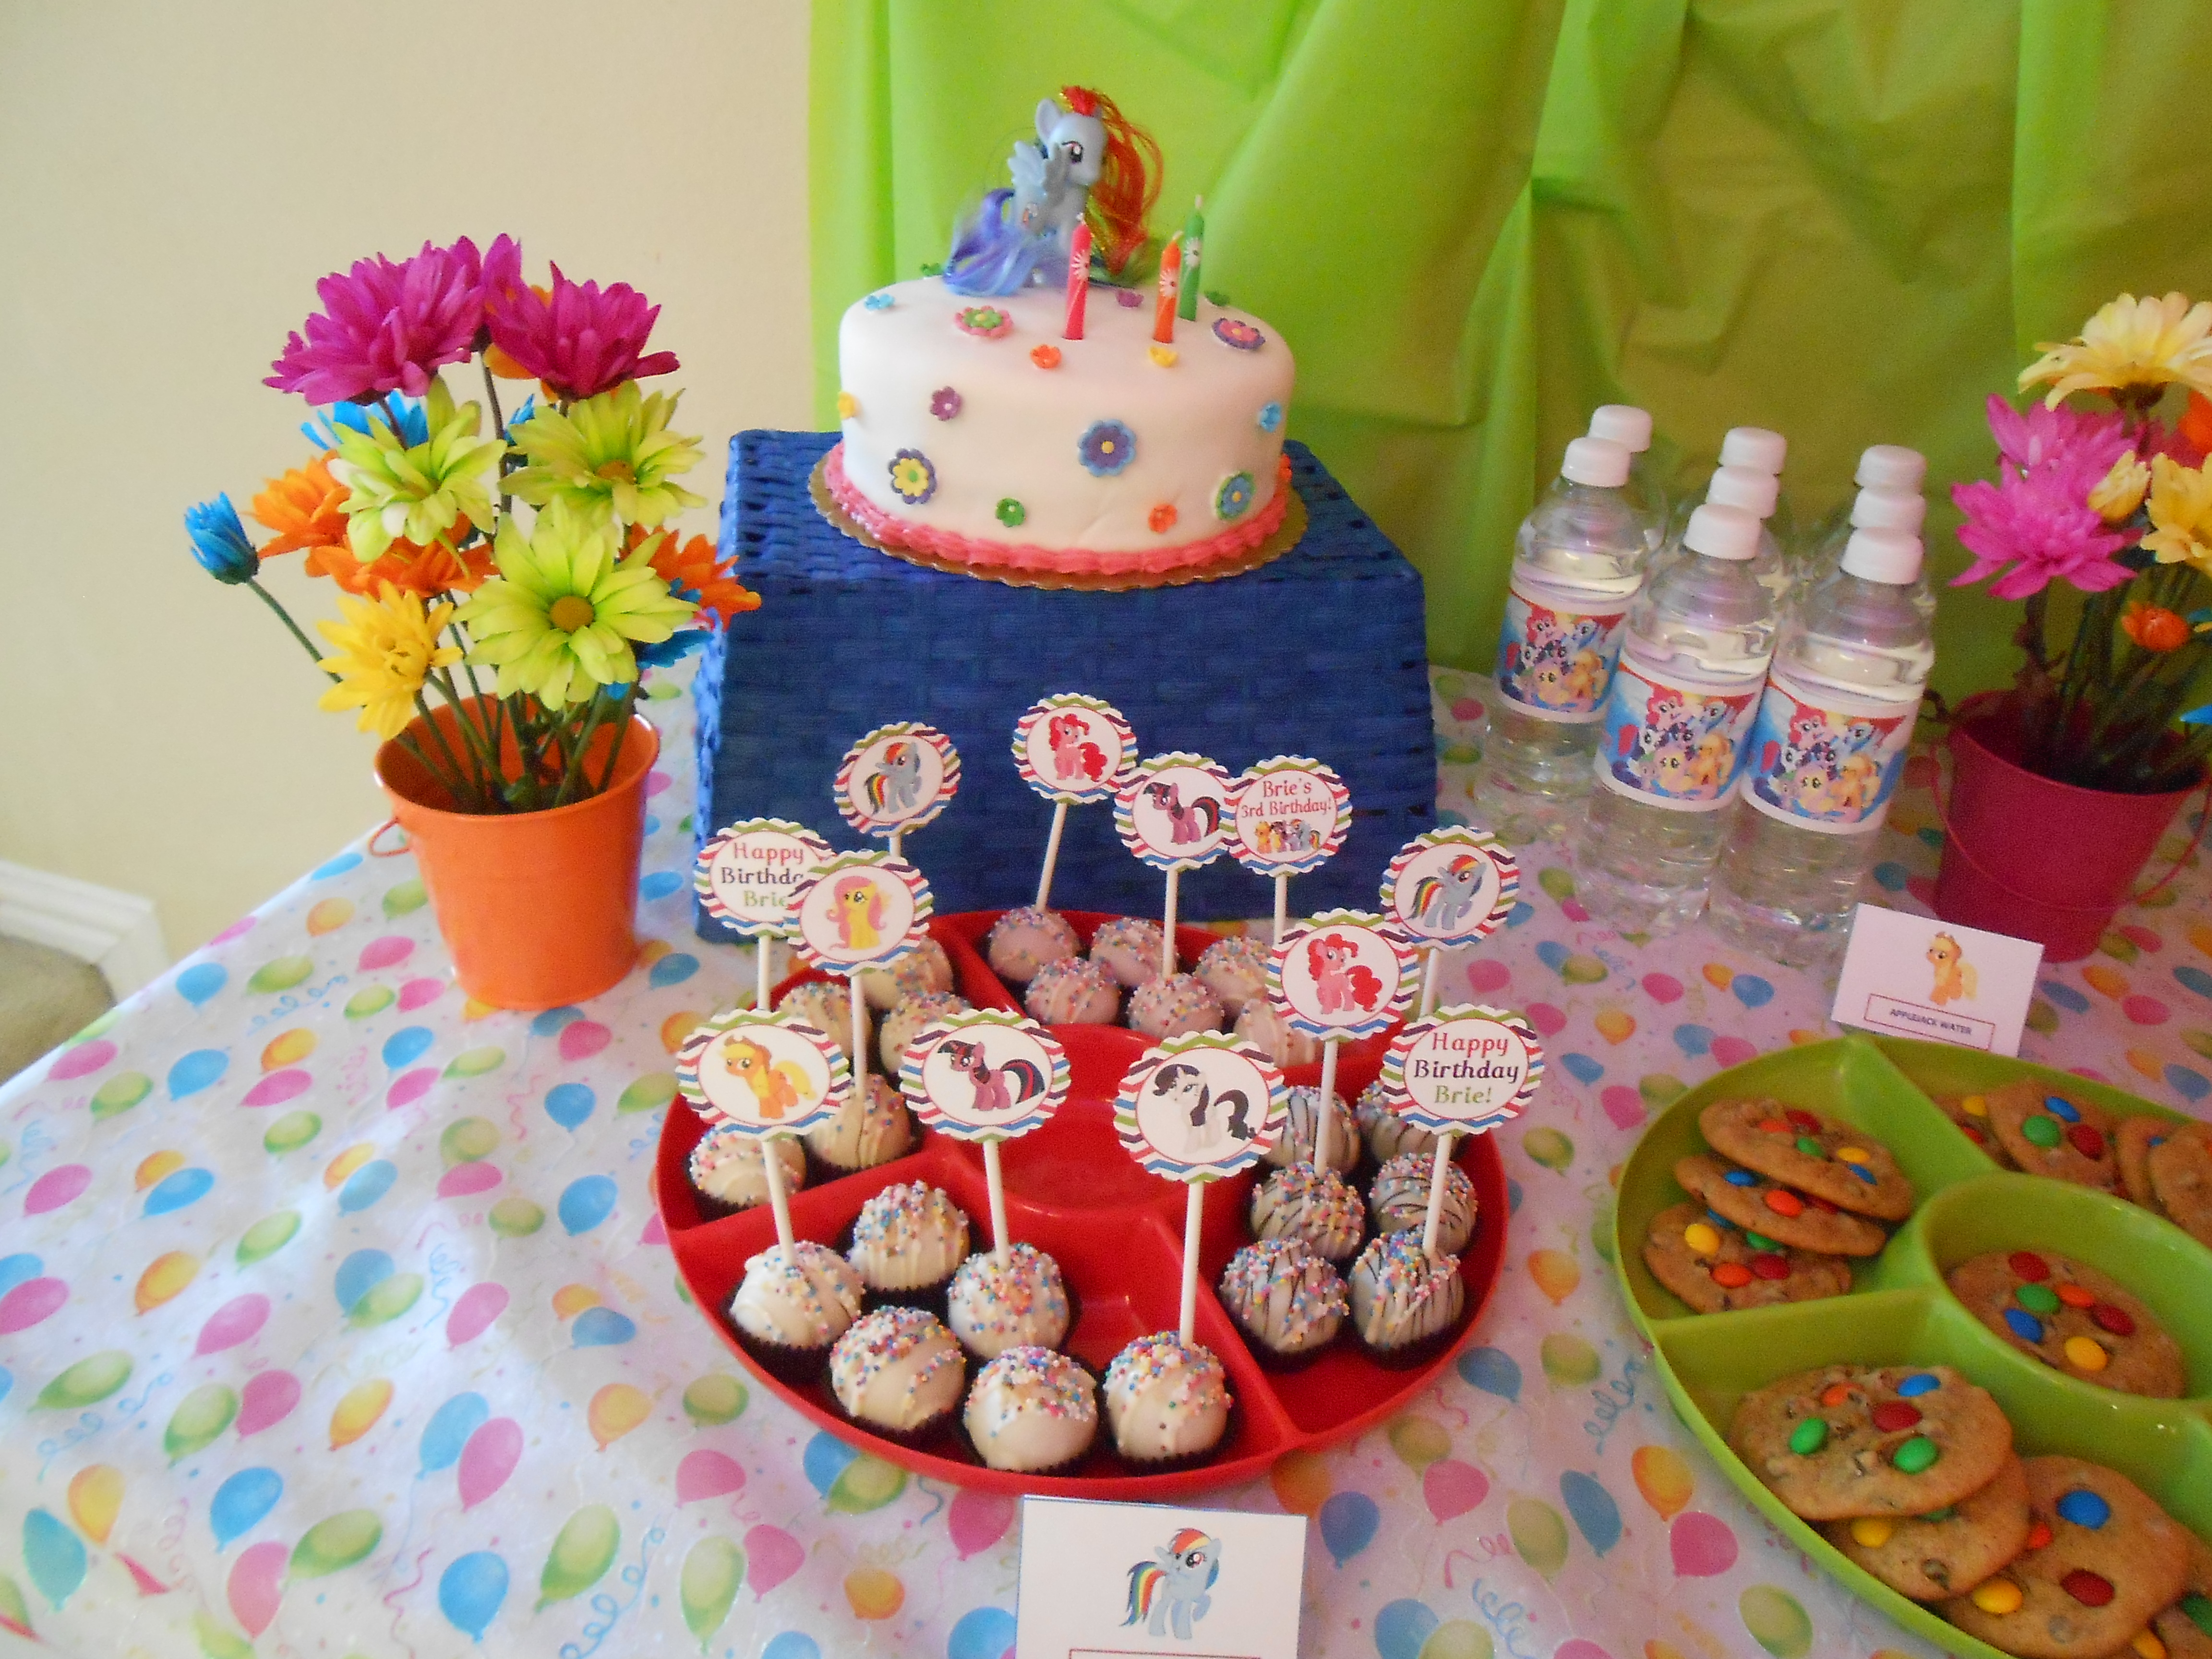 My Little Pony Party- Free Downloads | Just Shy Of Perfection - Free Printable My Little Pony Cupcake Toppers